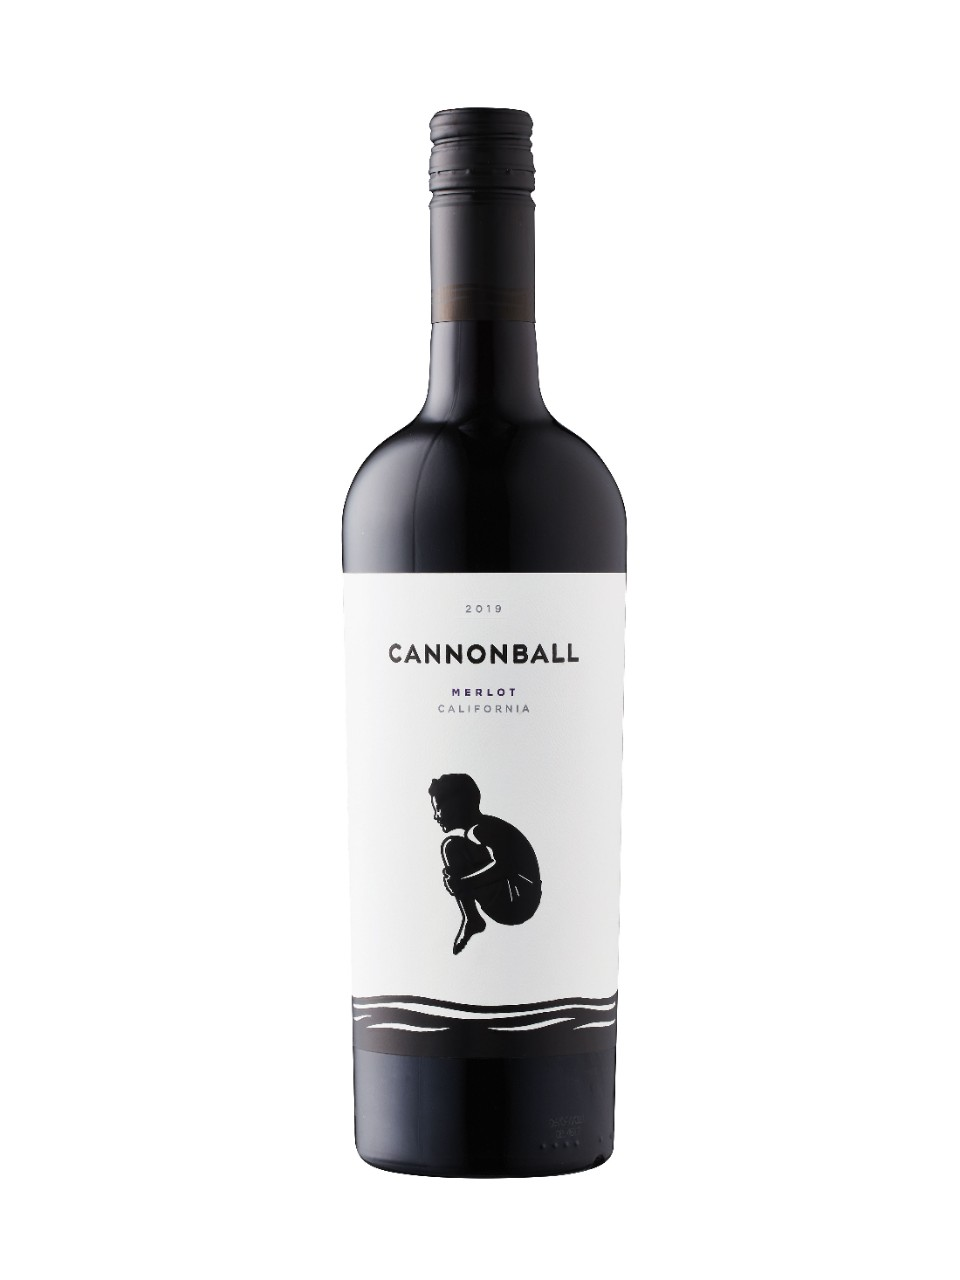 Cannonball Merlot 2017 from LCBO